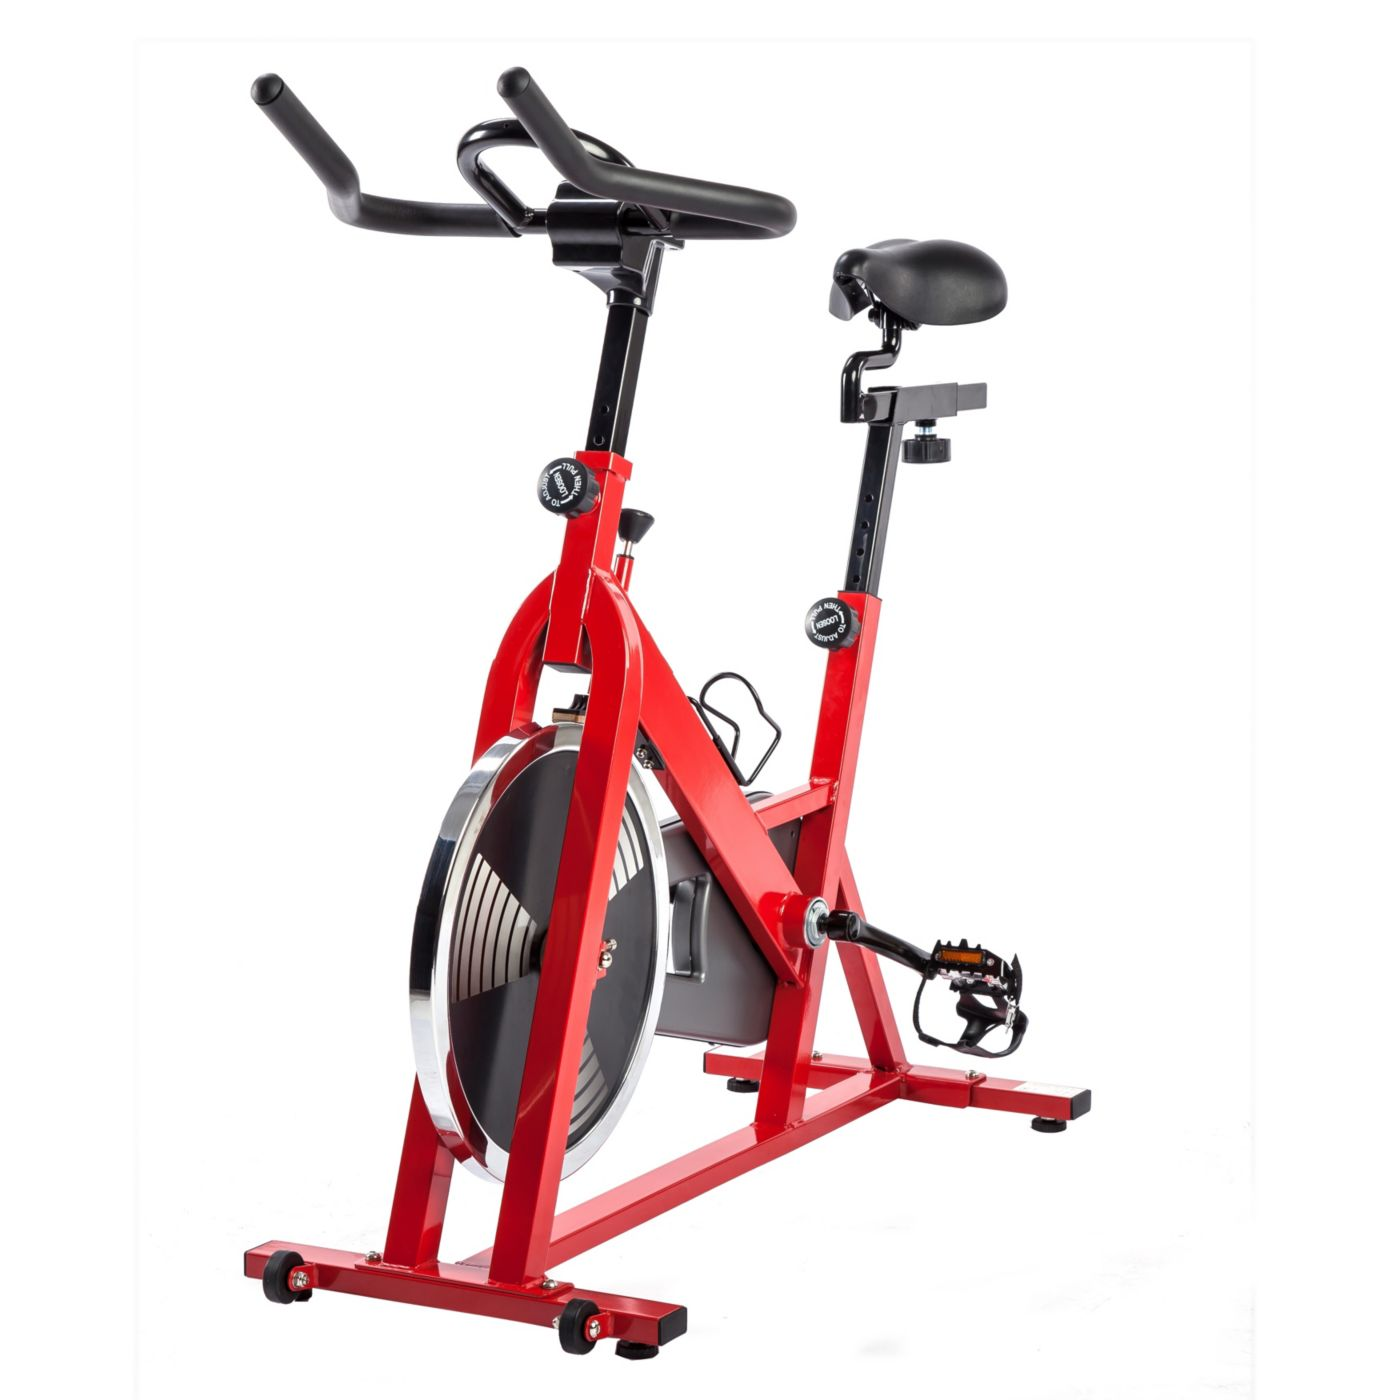 Sunny Health & Fitness SF-B1001S Indoor Cycling Bike